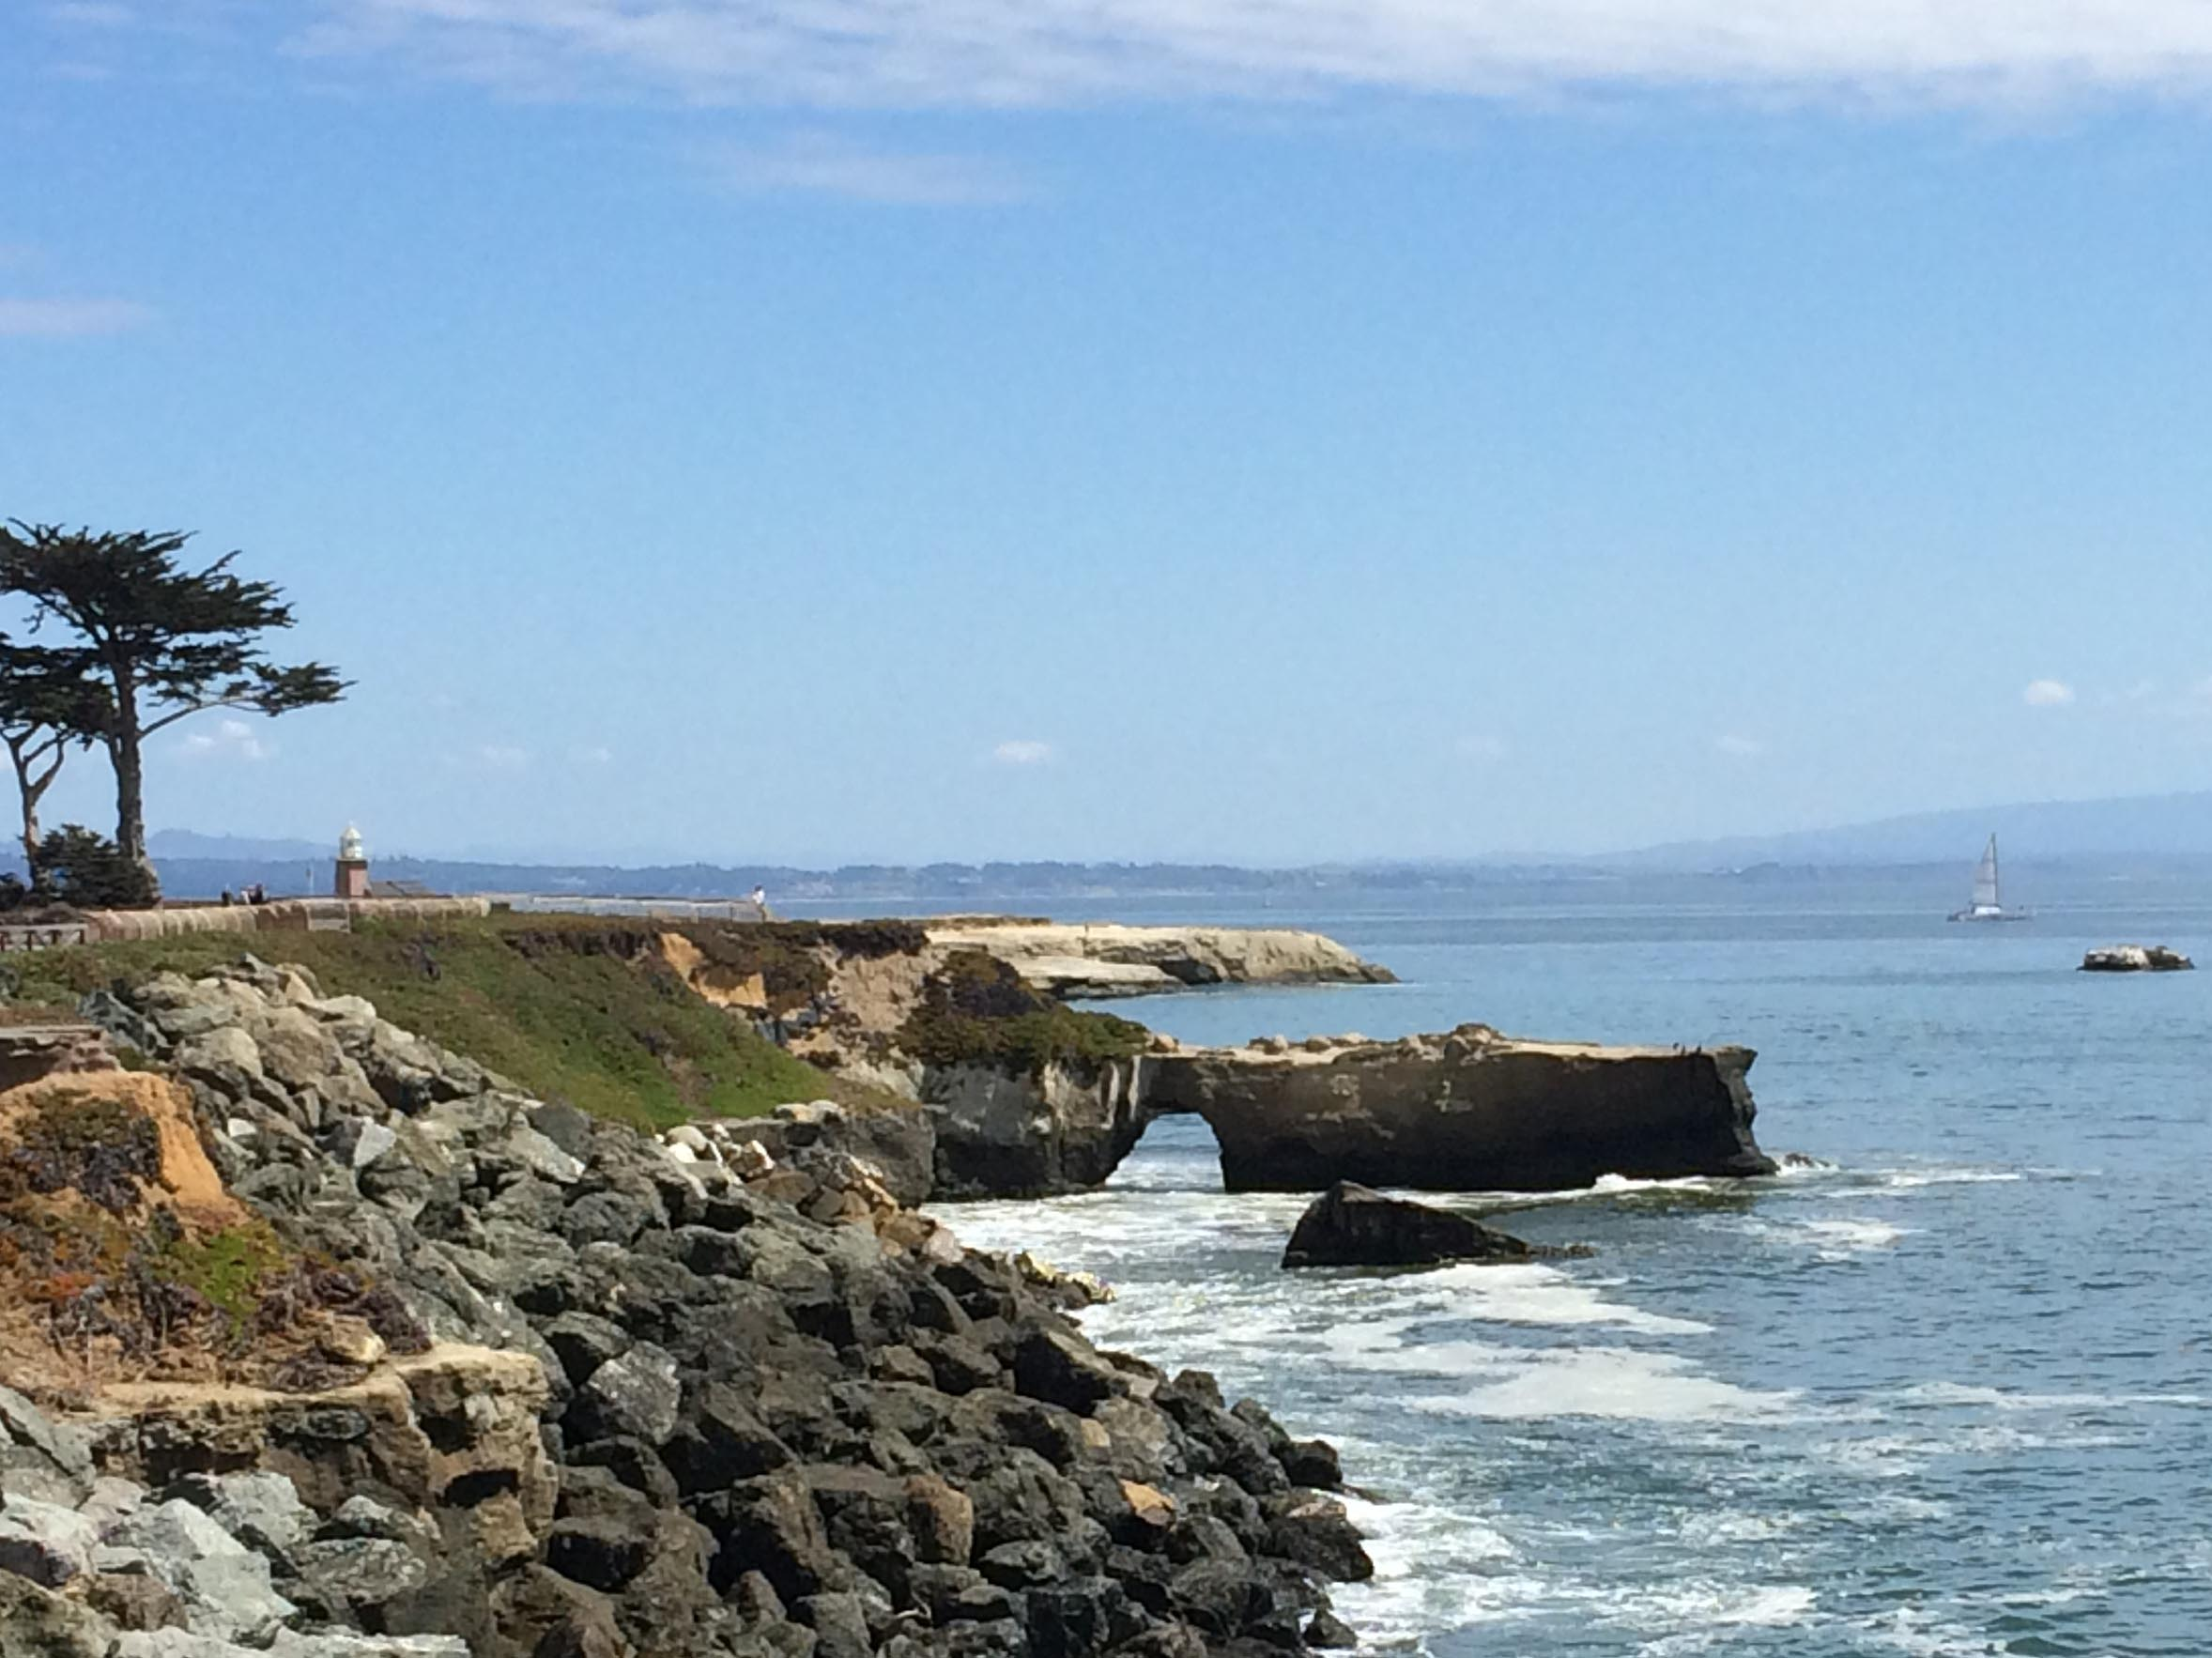 A view of California's central coast.  (Image by Emily Benson)